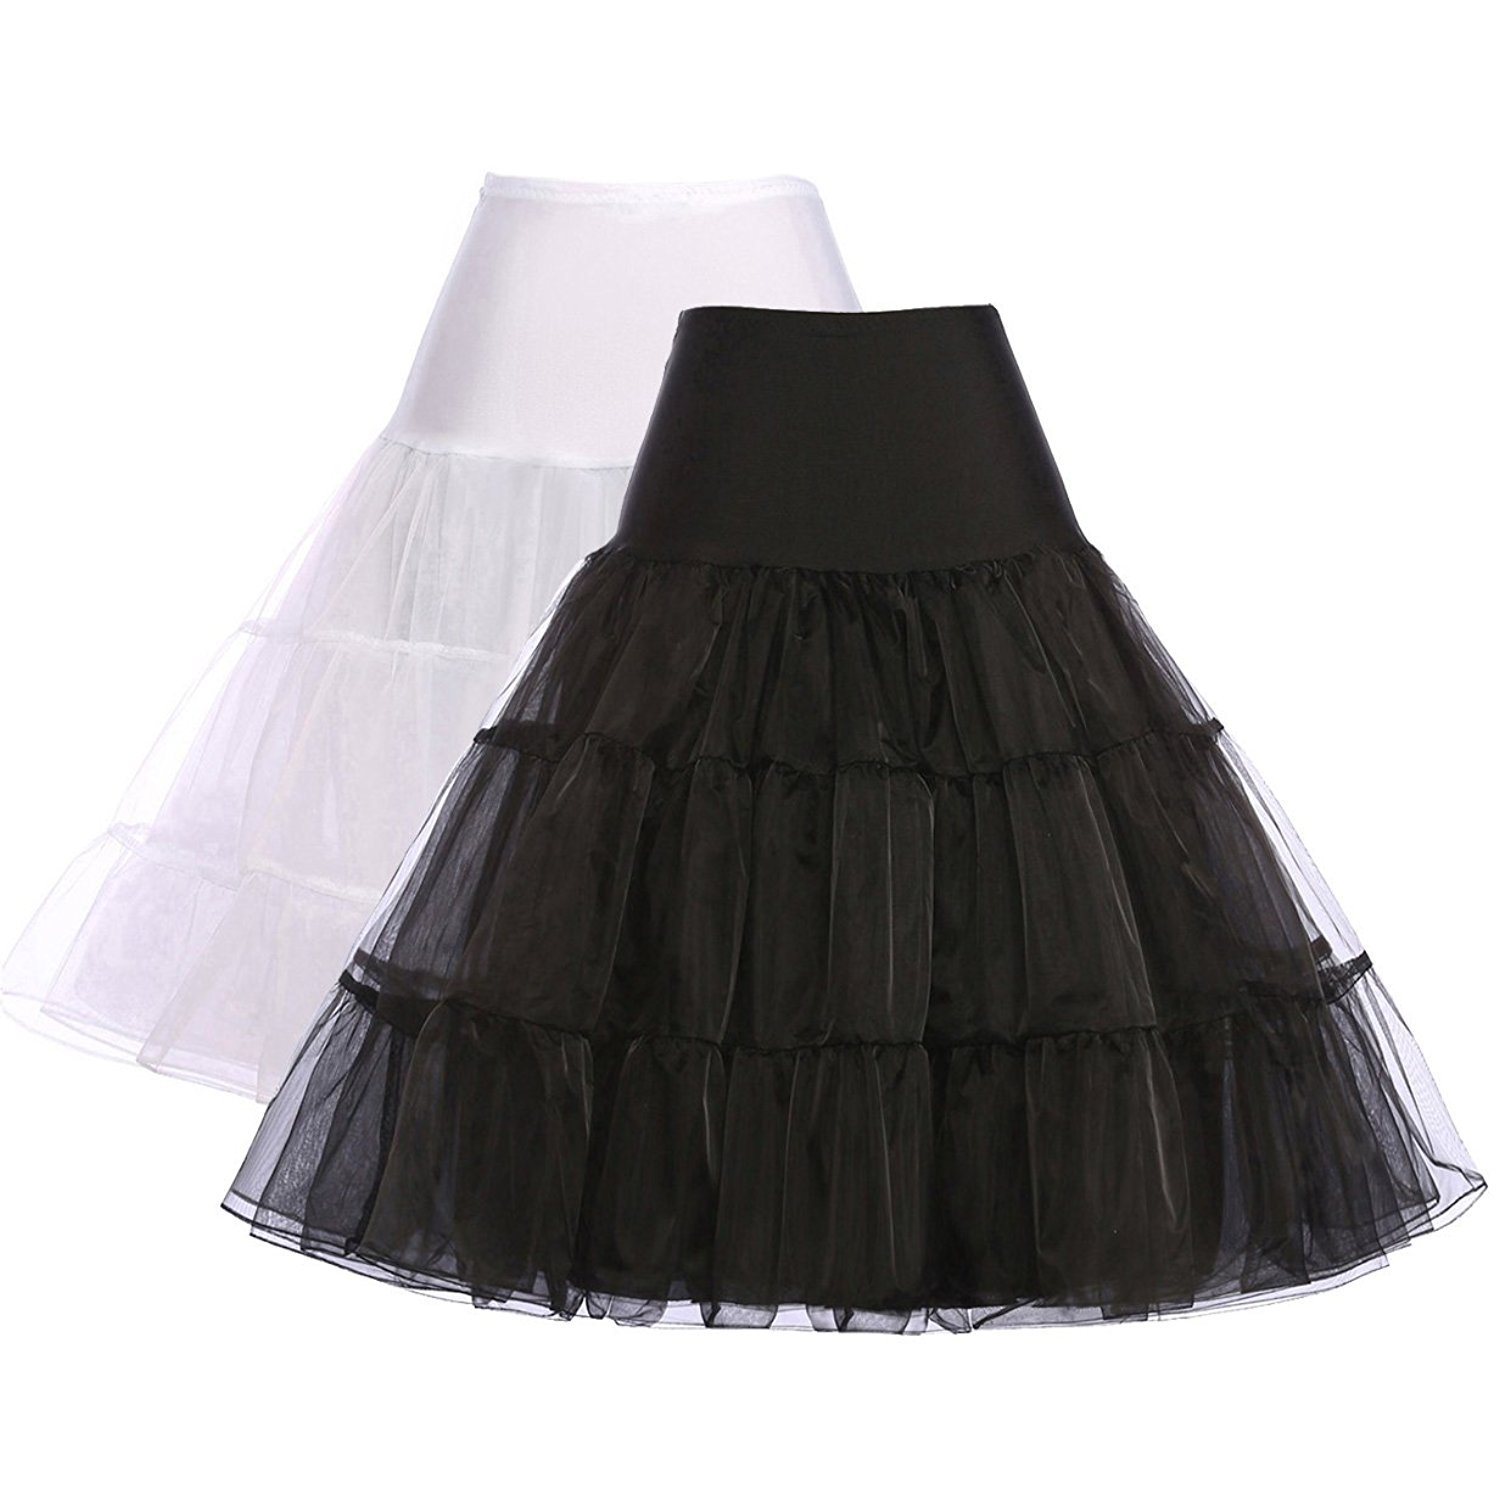 Bridal Accessories Wedding & Formal Wear Womens Knee-Length Tulle Puffy Short Vintage Wedding Bridal Petticoat Underskirt